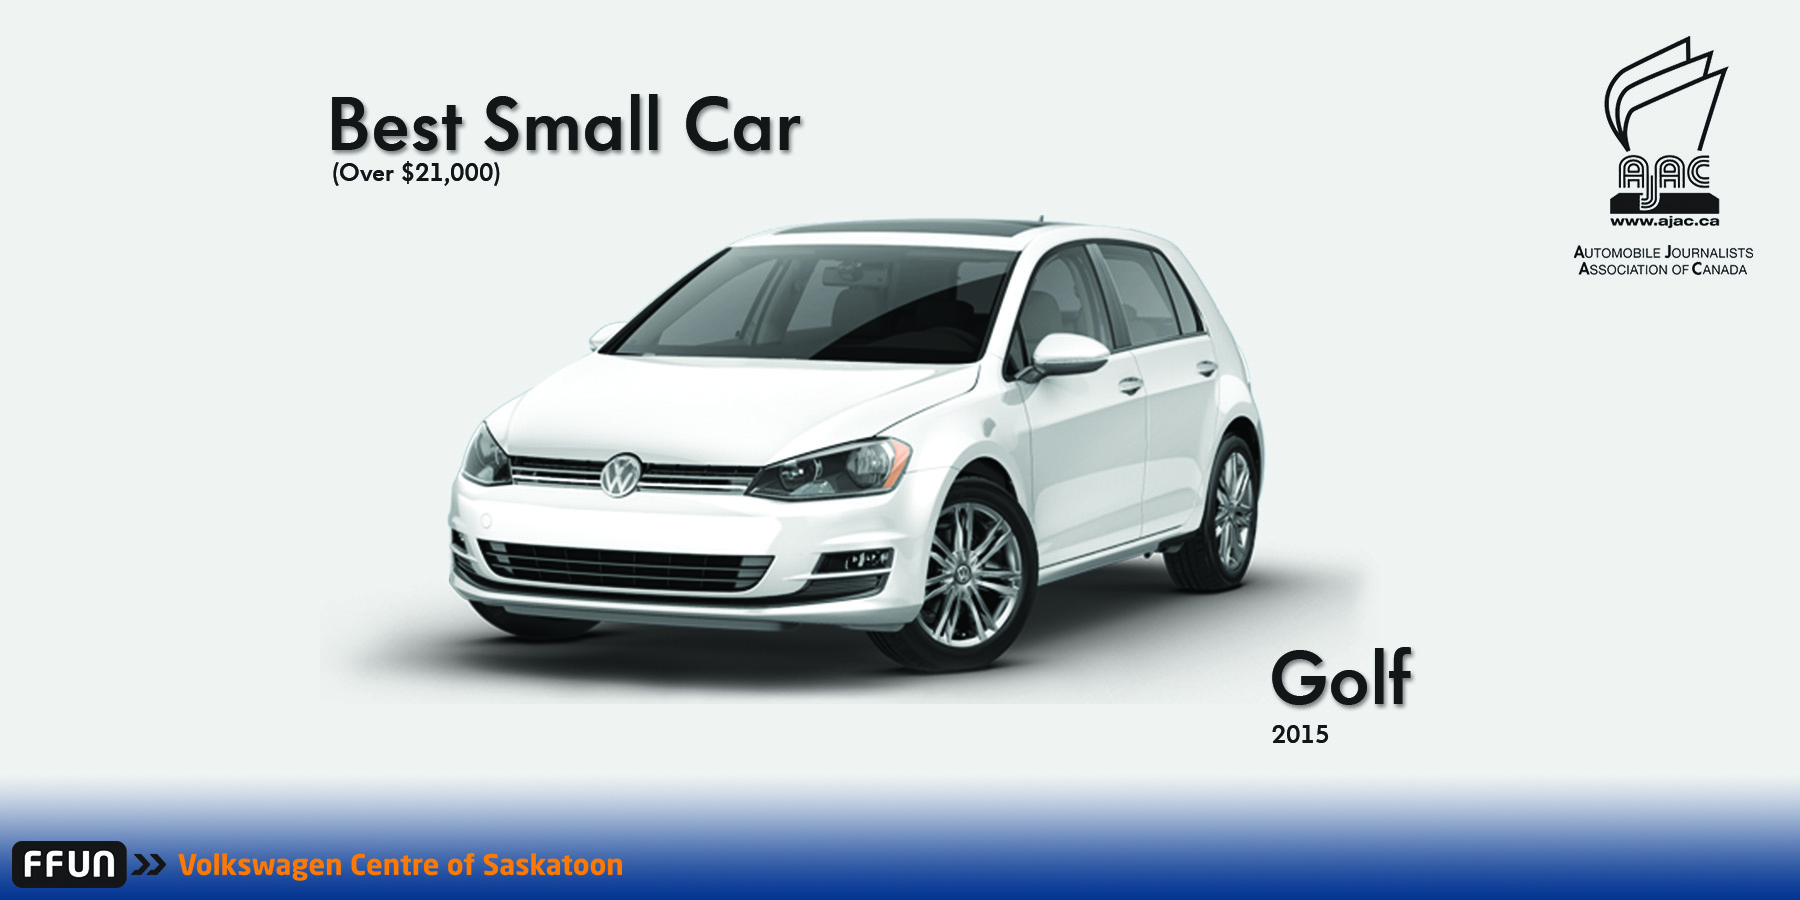 Best Small Car